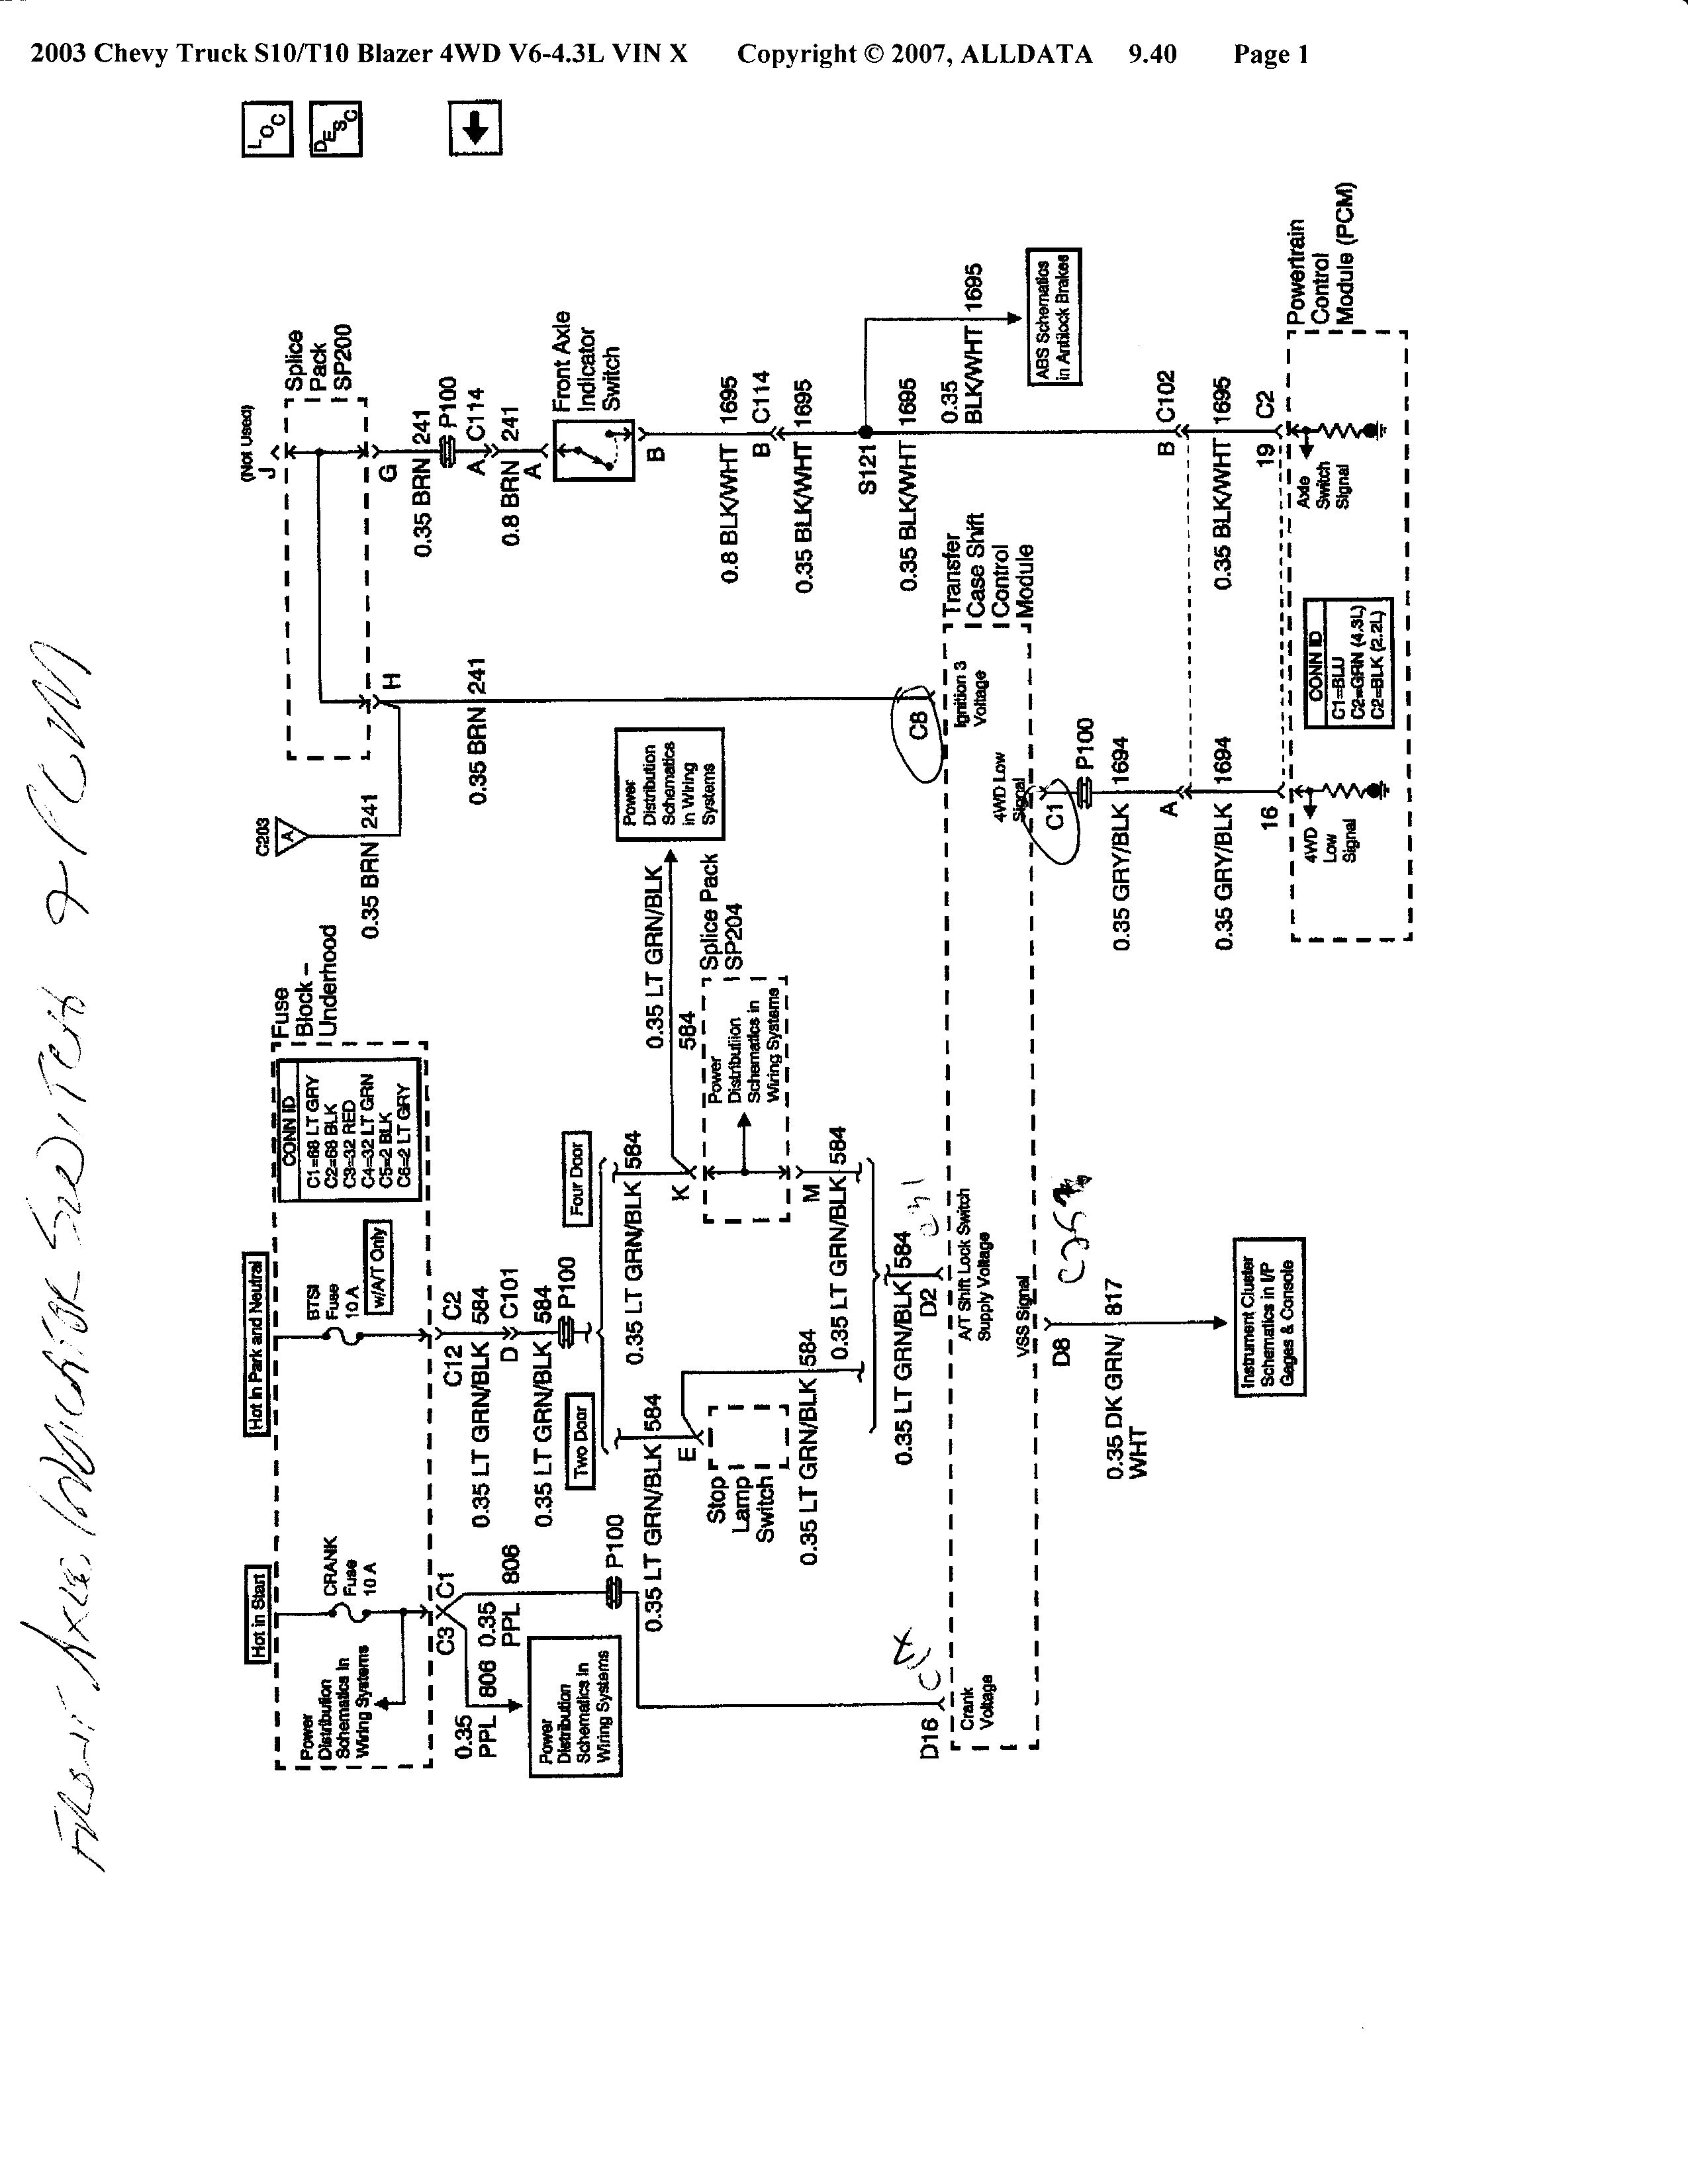 Chevy 4Wd Actuator Wiring Diagram | Wiring Library - Chevy 4Wd Actuator Upgrade Wiring Diagram